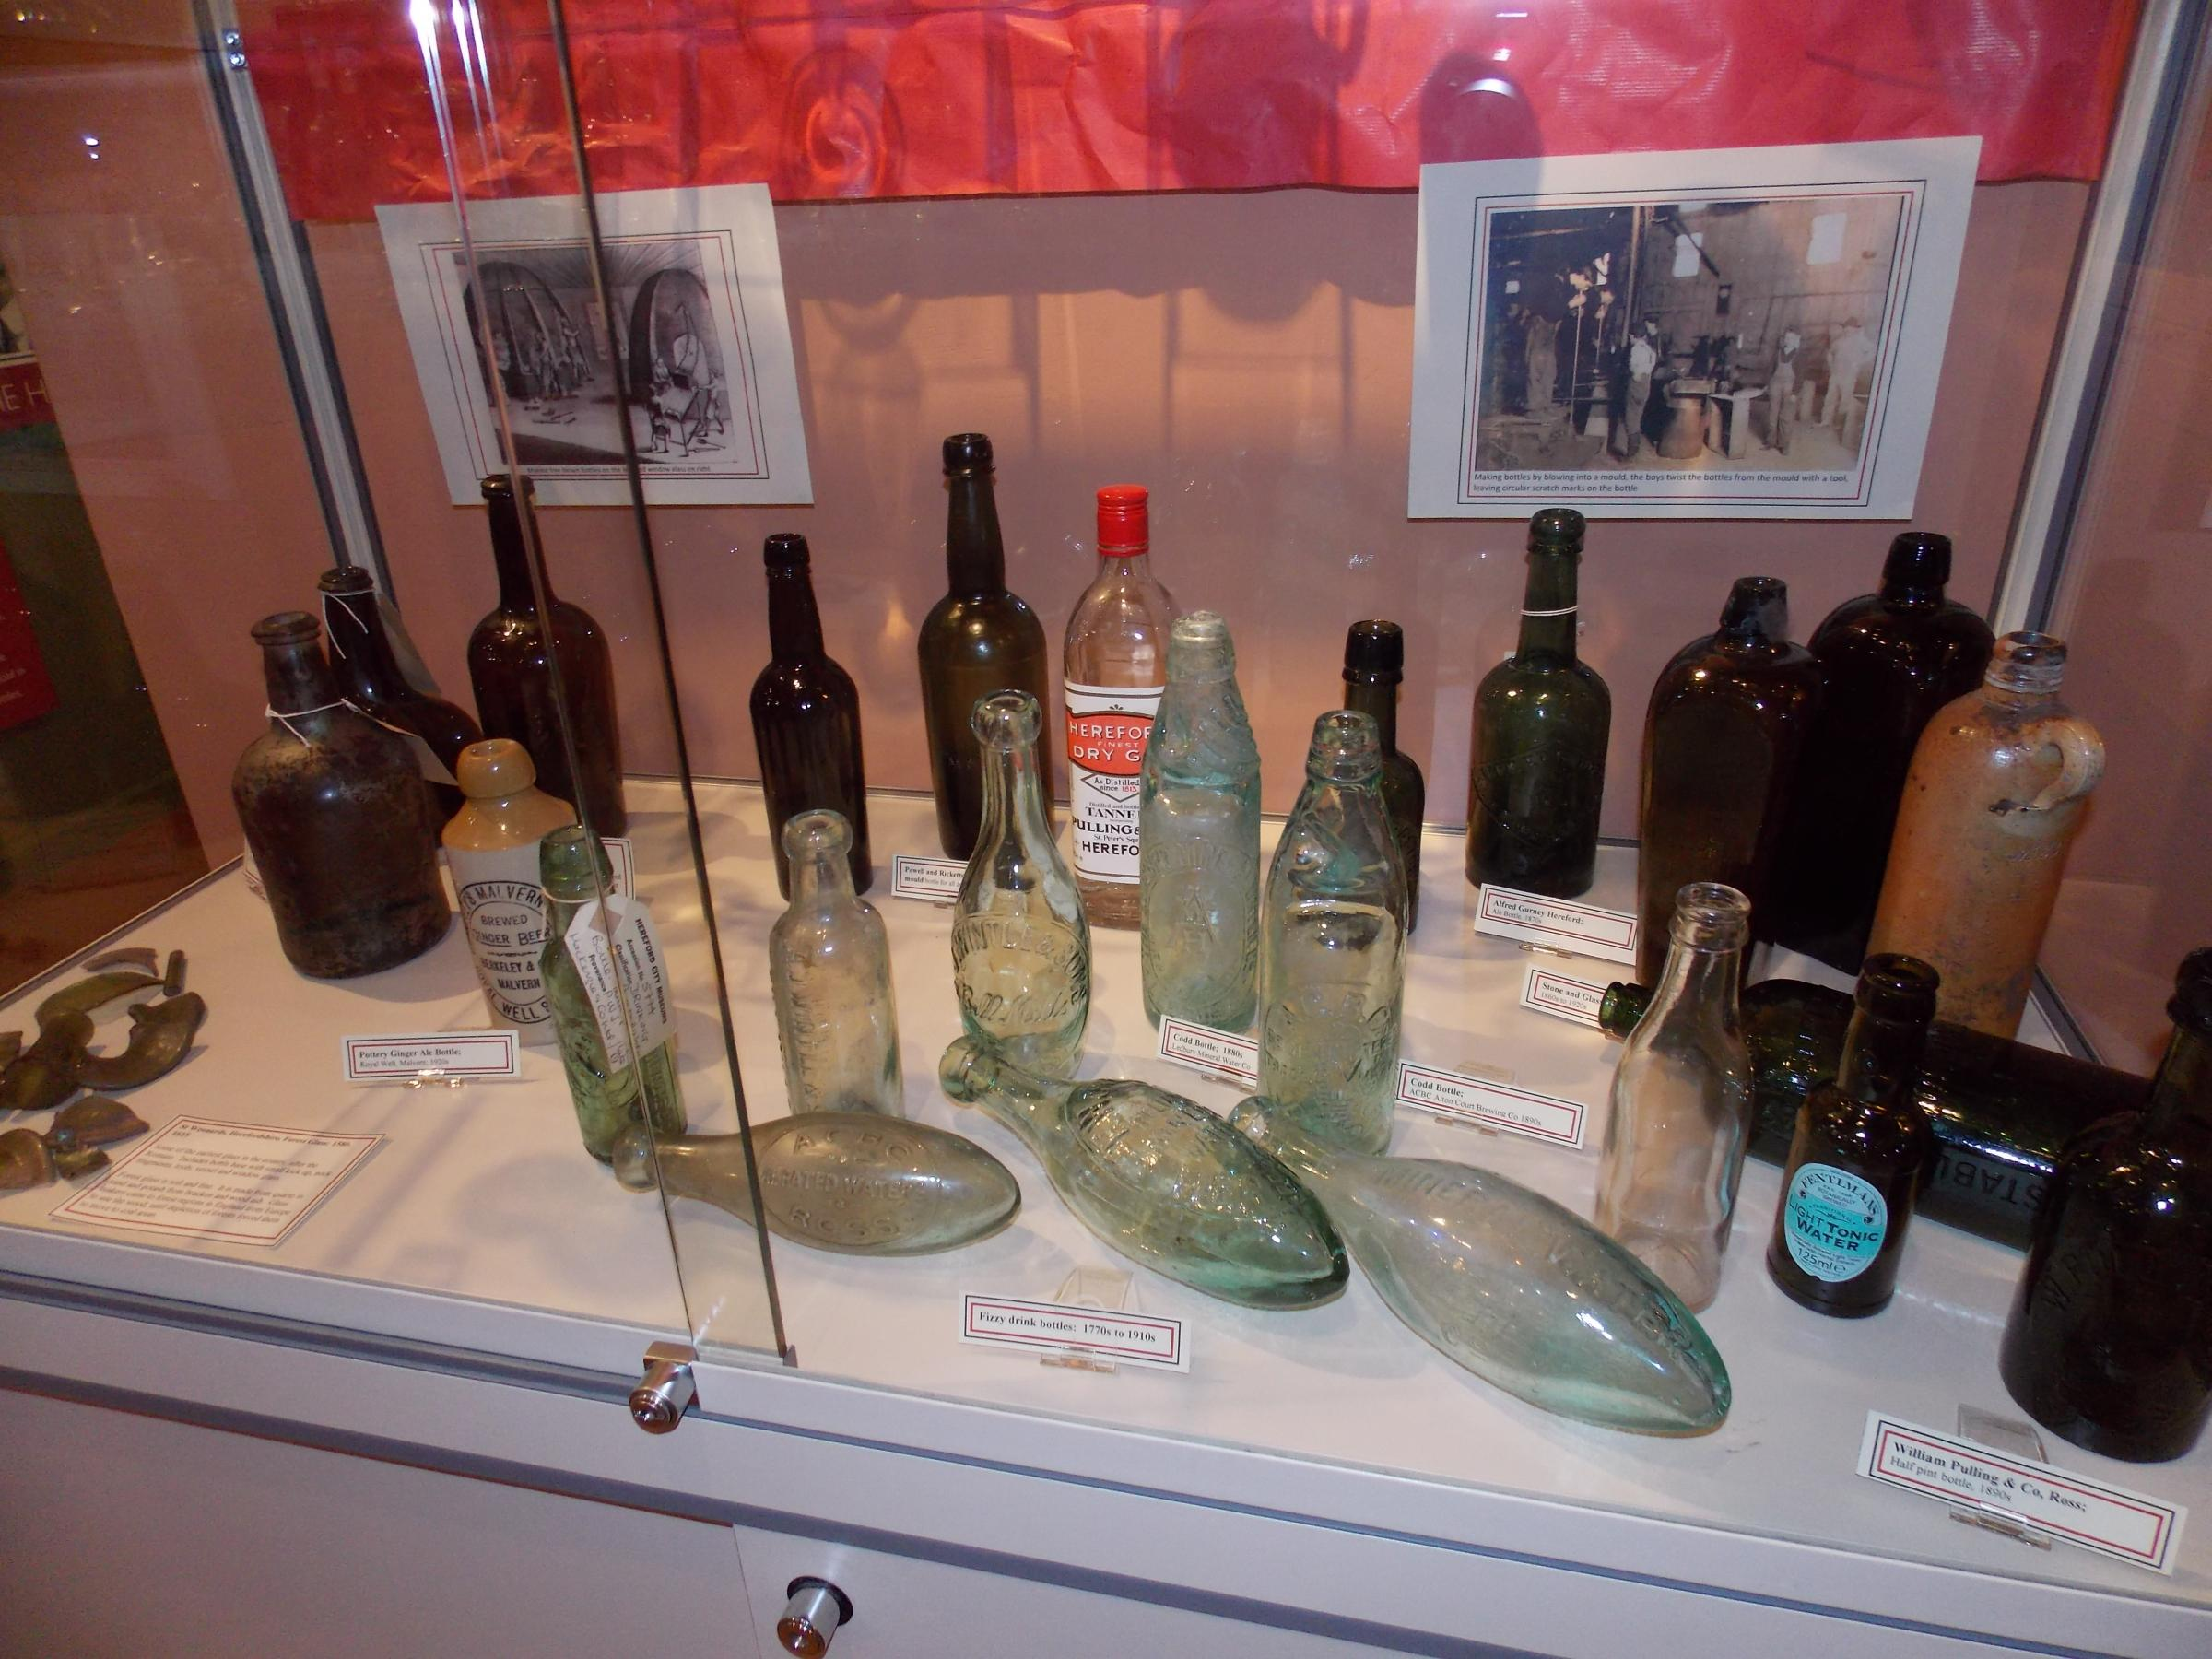 The bottles in their new home as part of an exhibition at the Hereford Cider Museum.